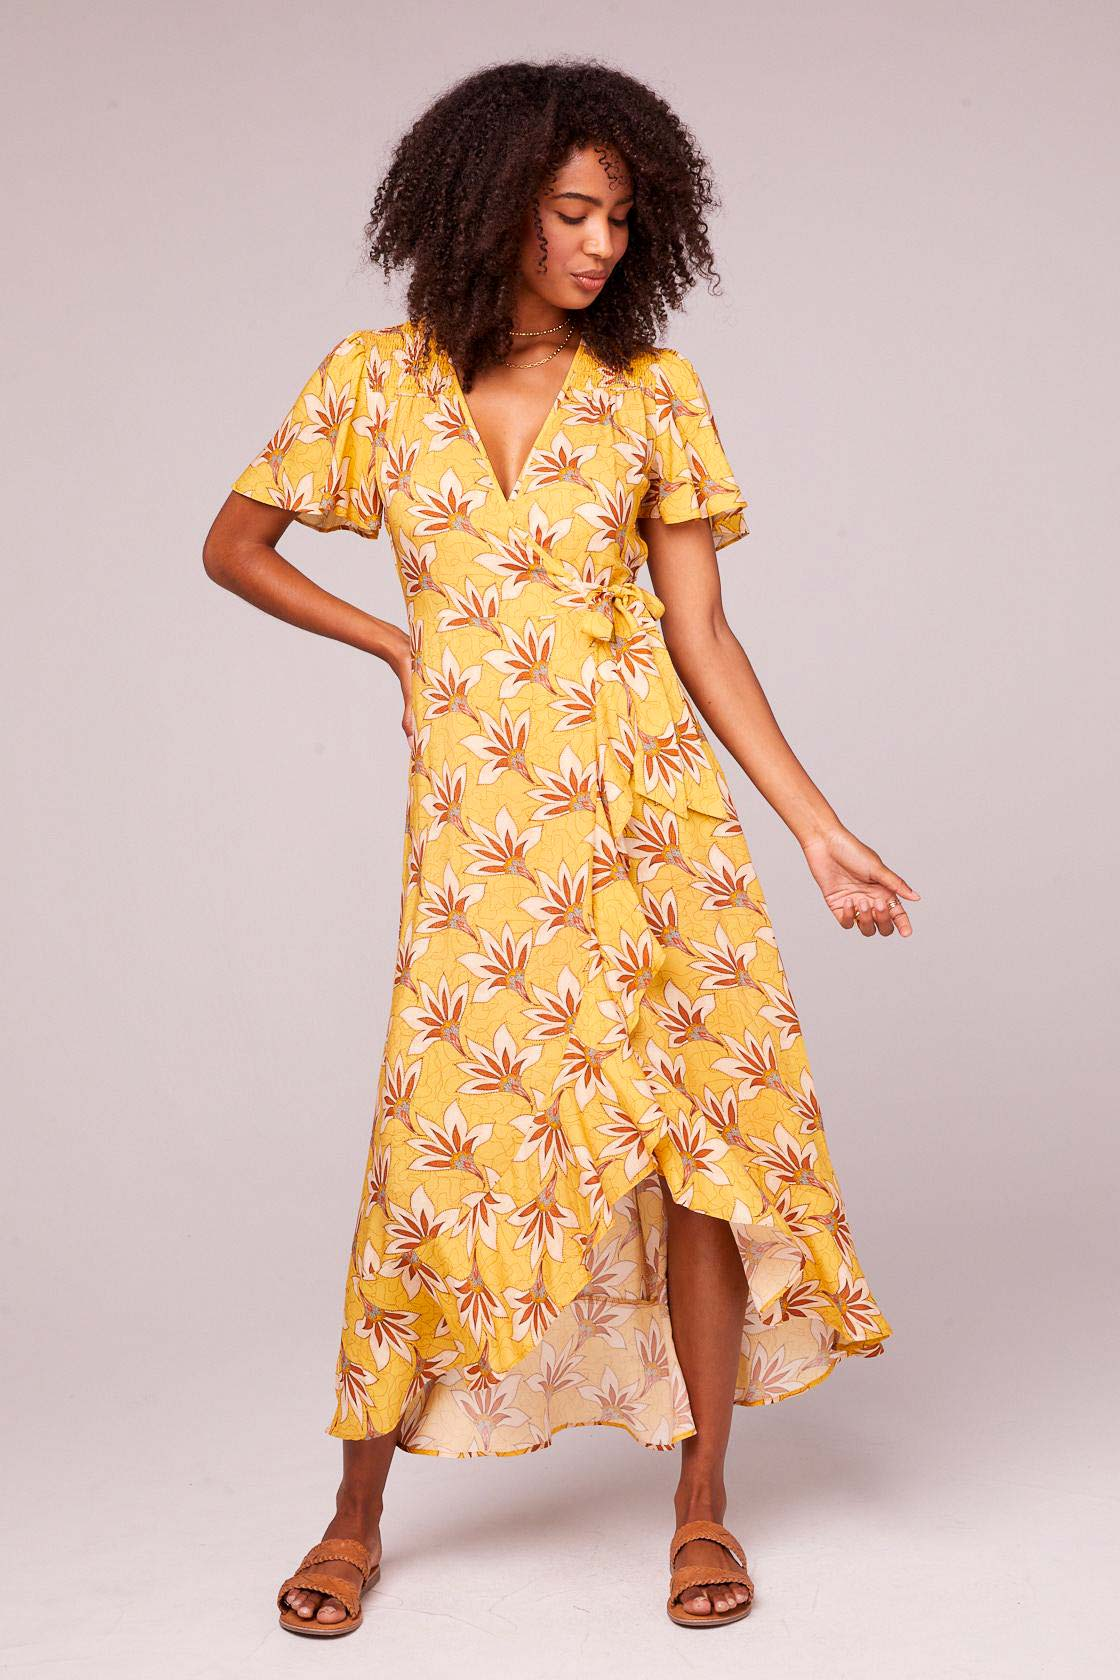 Amelie Dress - The Canyon